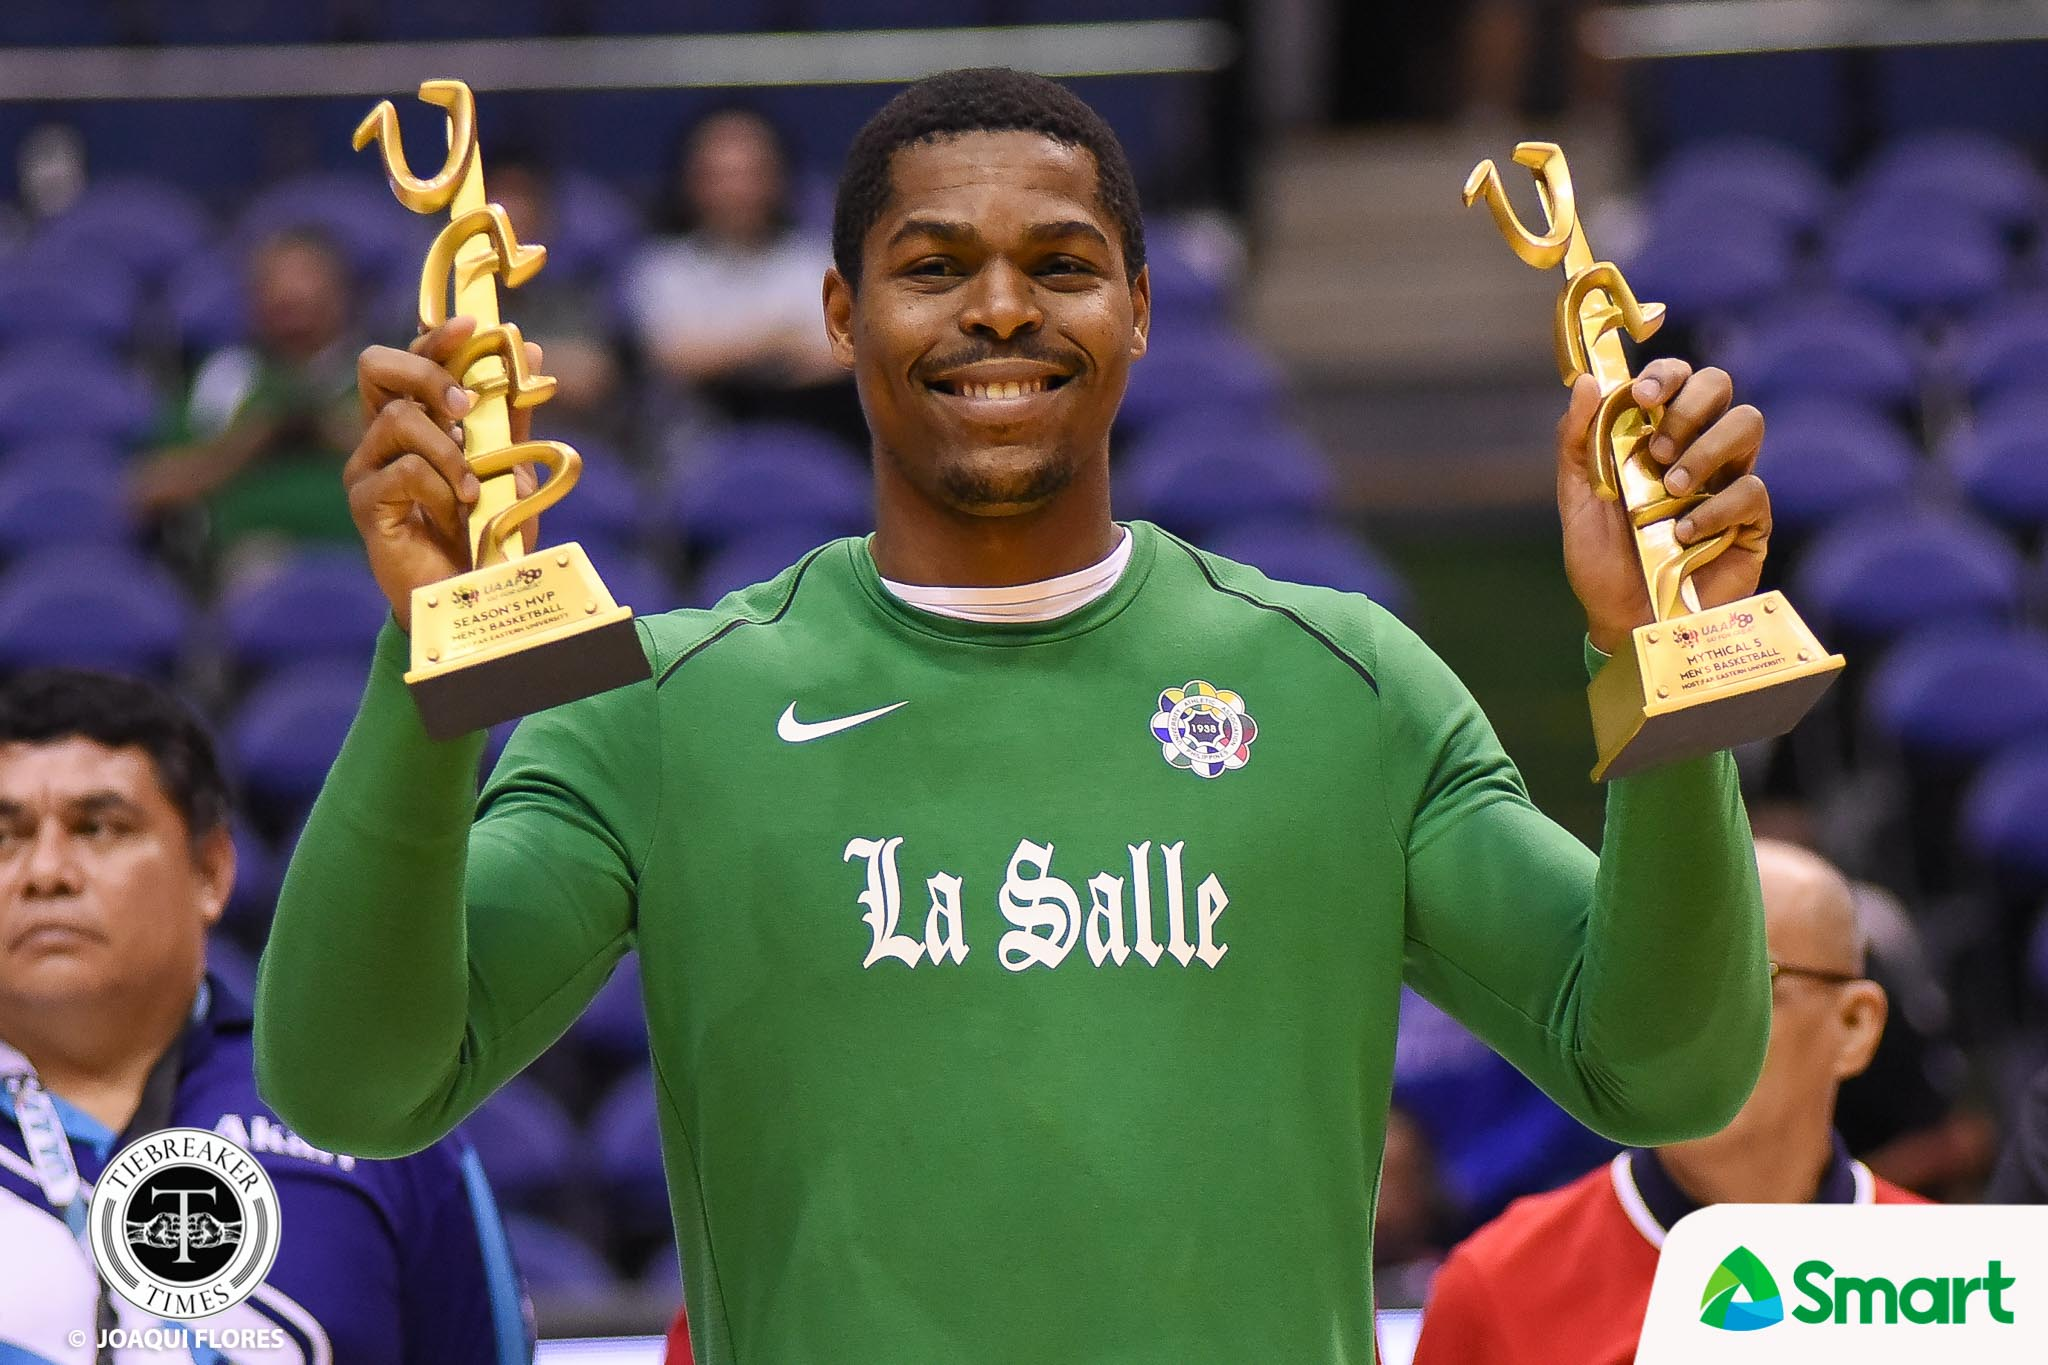 UAAP-80-Mens-Basketball-Awarding-Ben-Mbala-1005 Ben Mbala's first choice was Ateneo, has no regrets with La Salle ADMU Basketball DLSU News UAAP  - philippine sports news